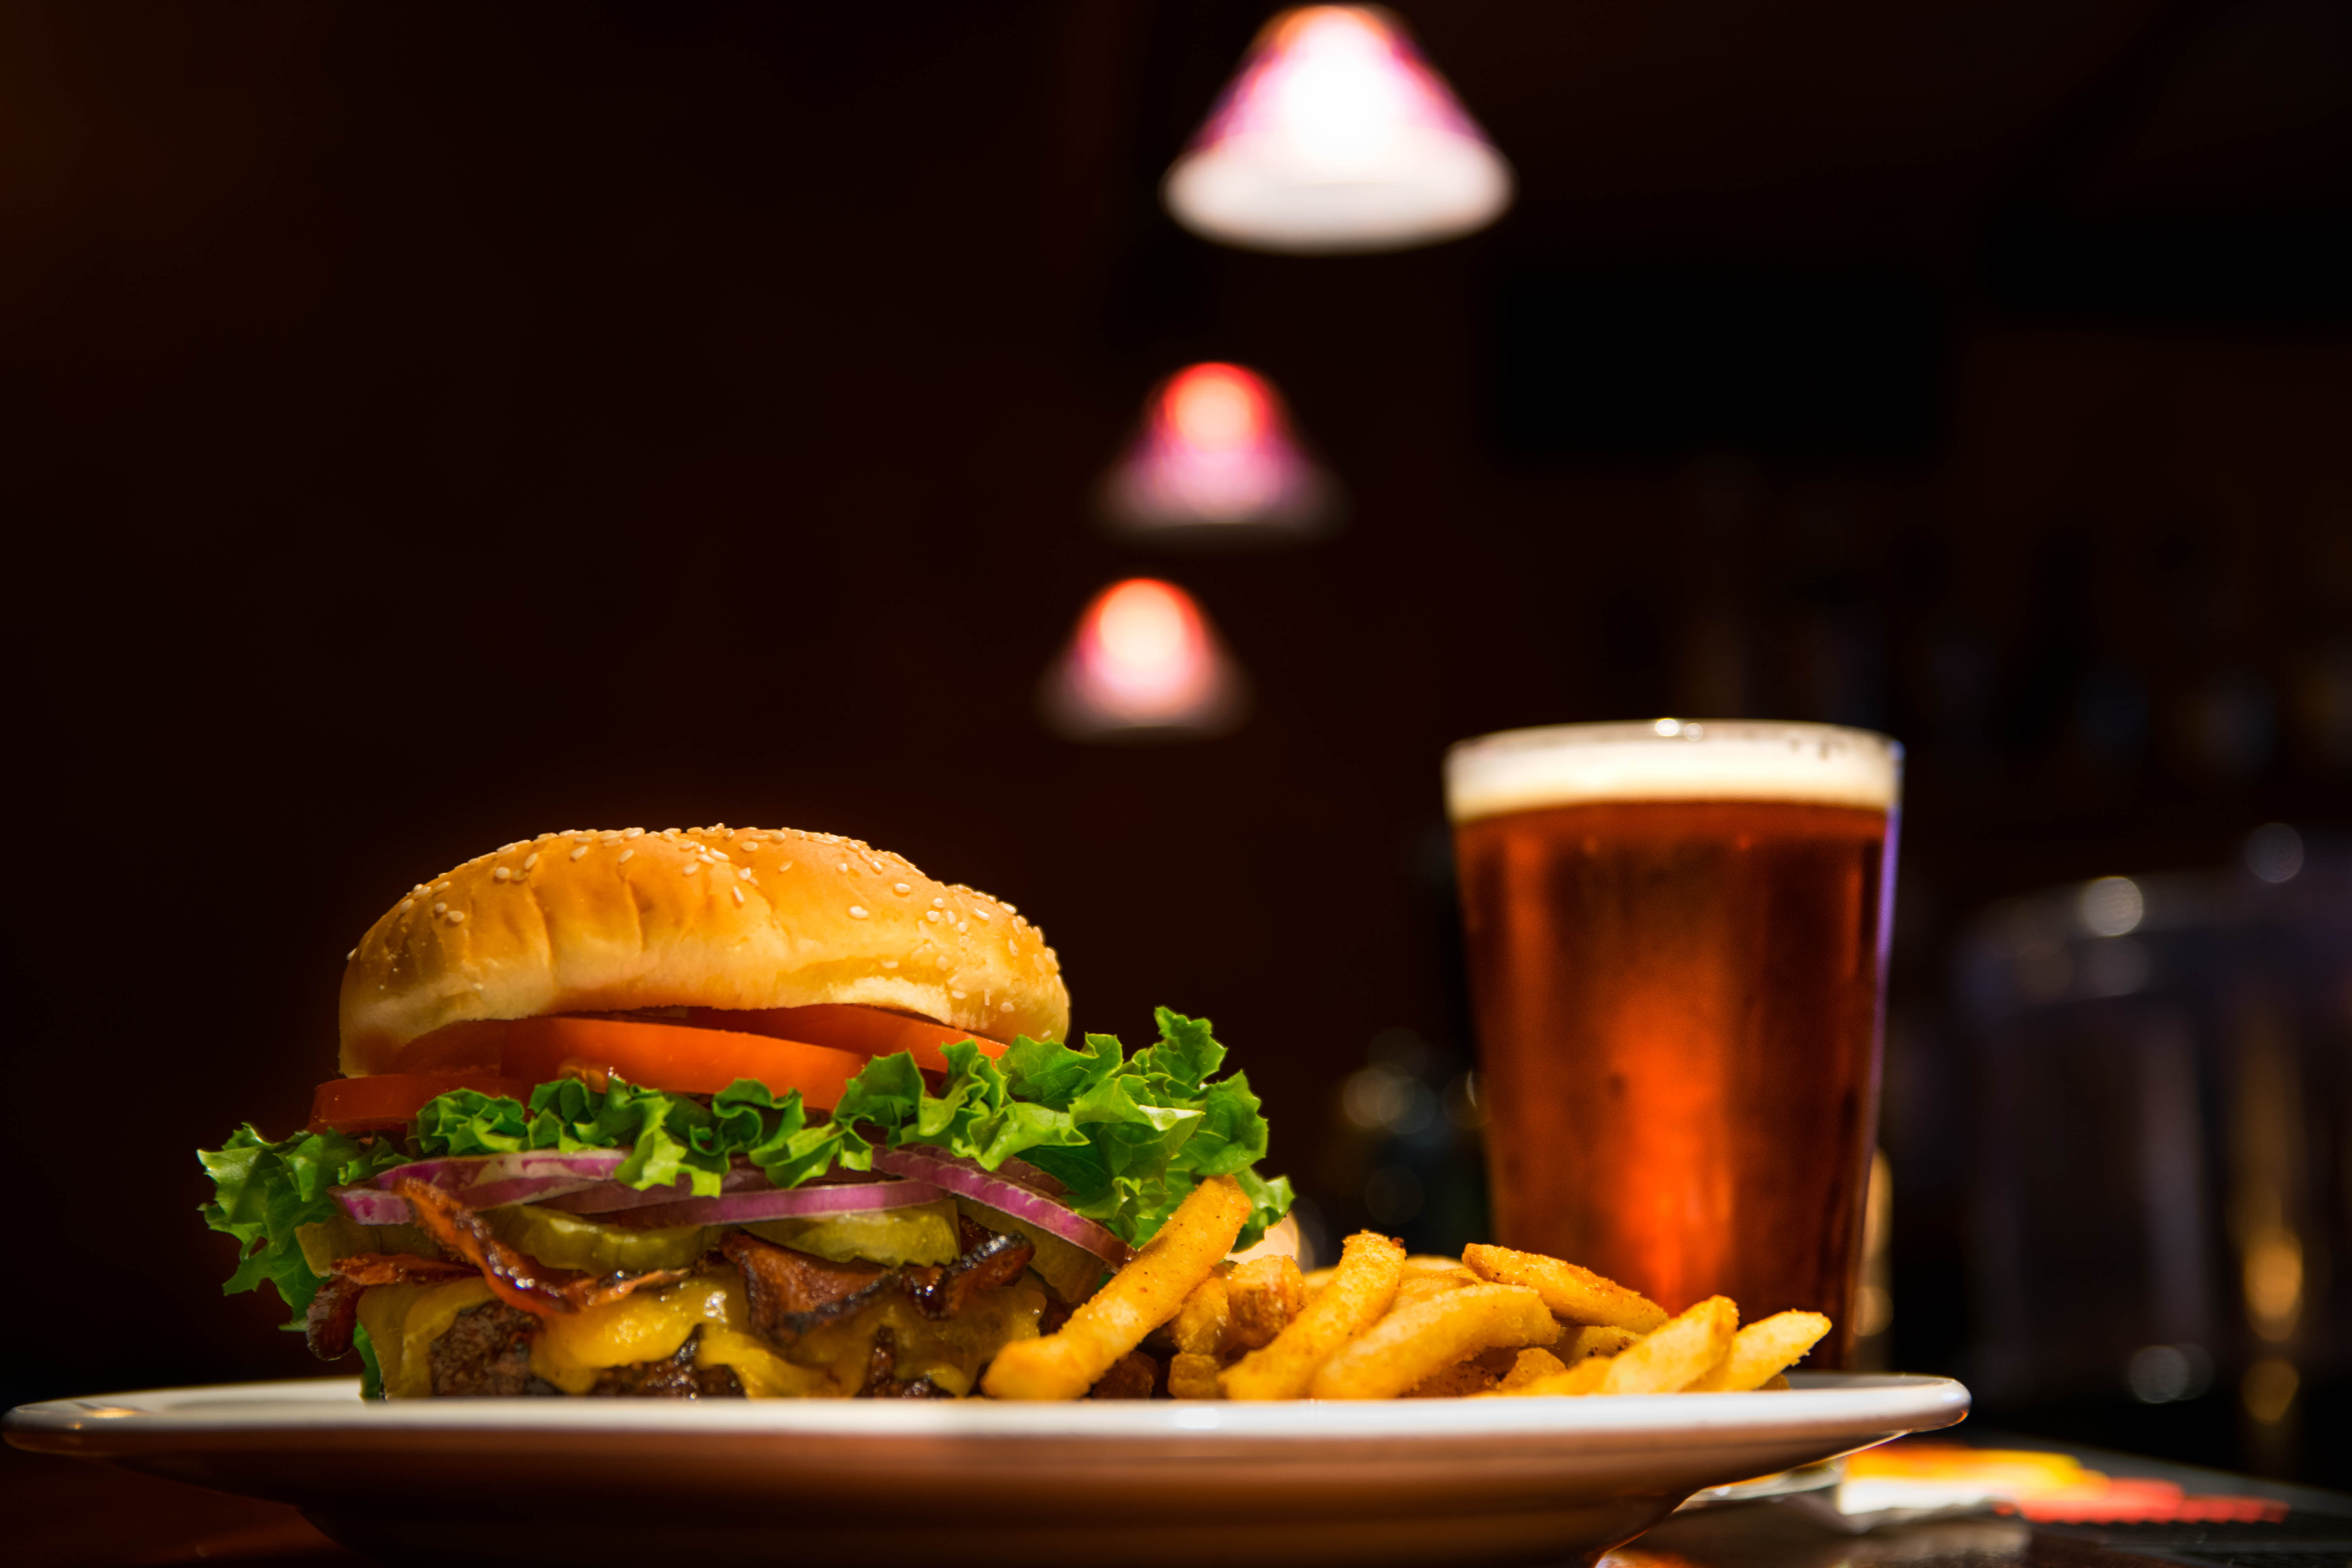 Interesting Facts About the Fast Food Industry